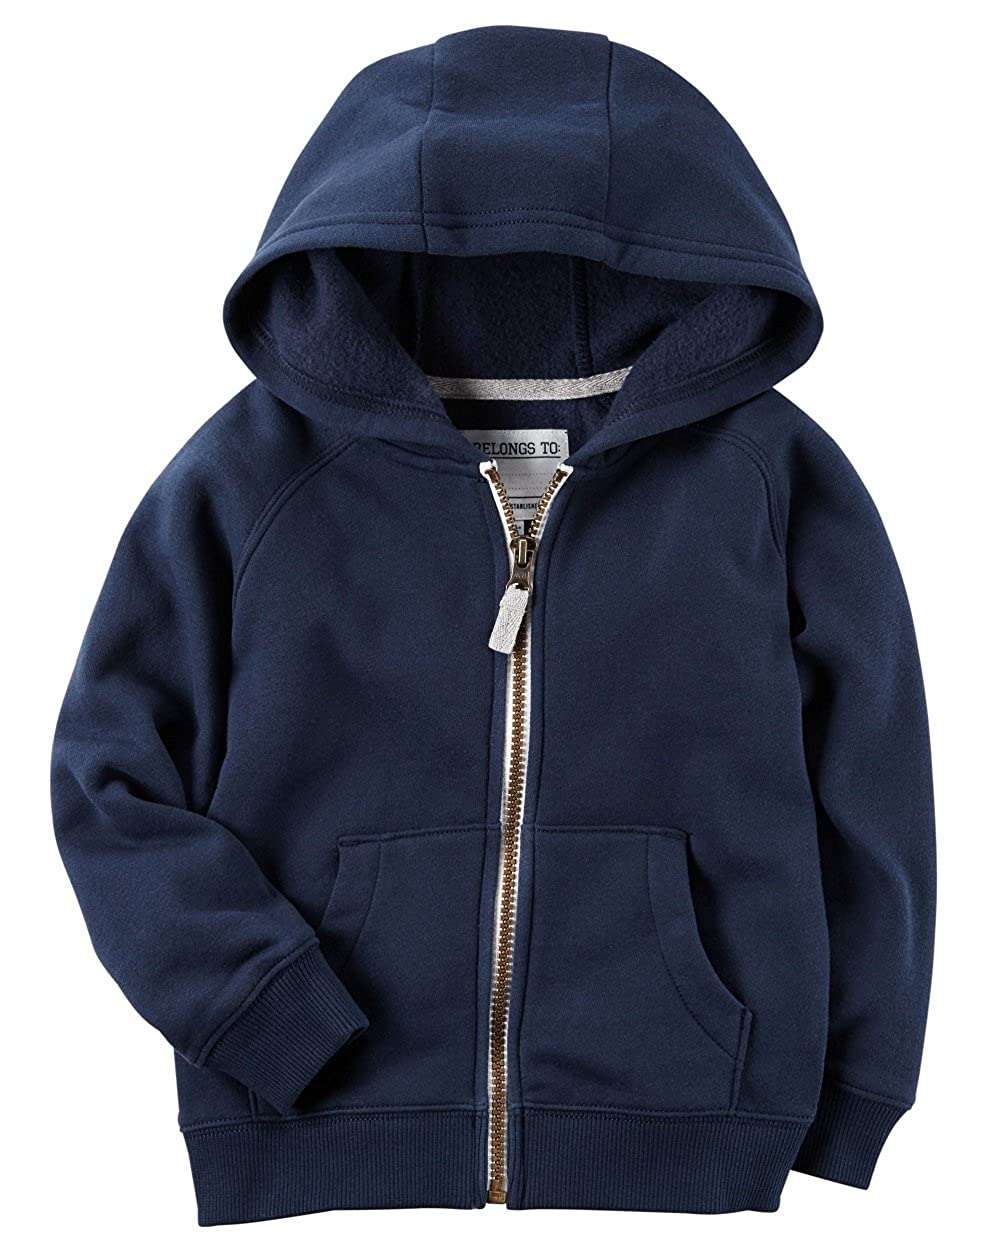 Carters Baby Boys Brushed Fleece Zip-Up Hoodie 6 Months Navy